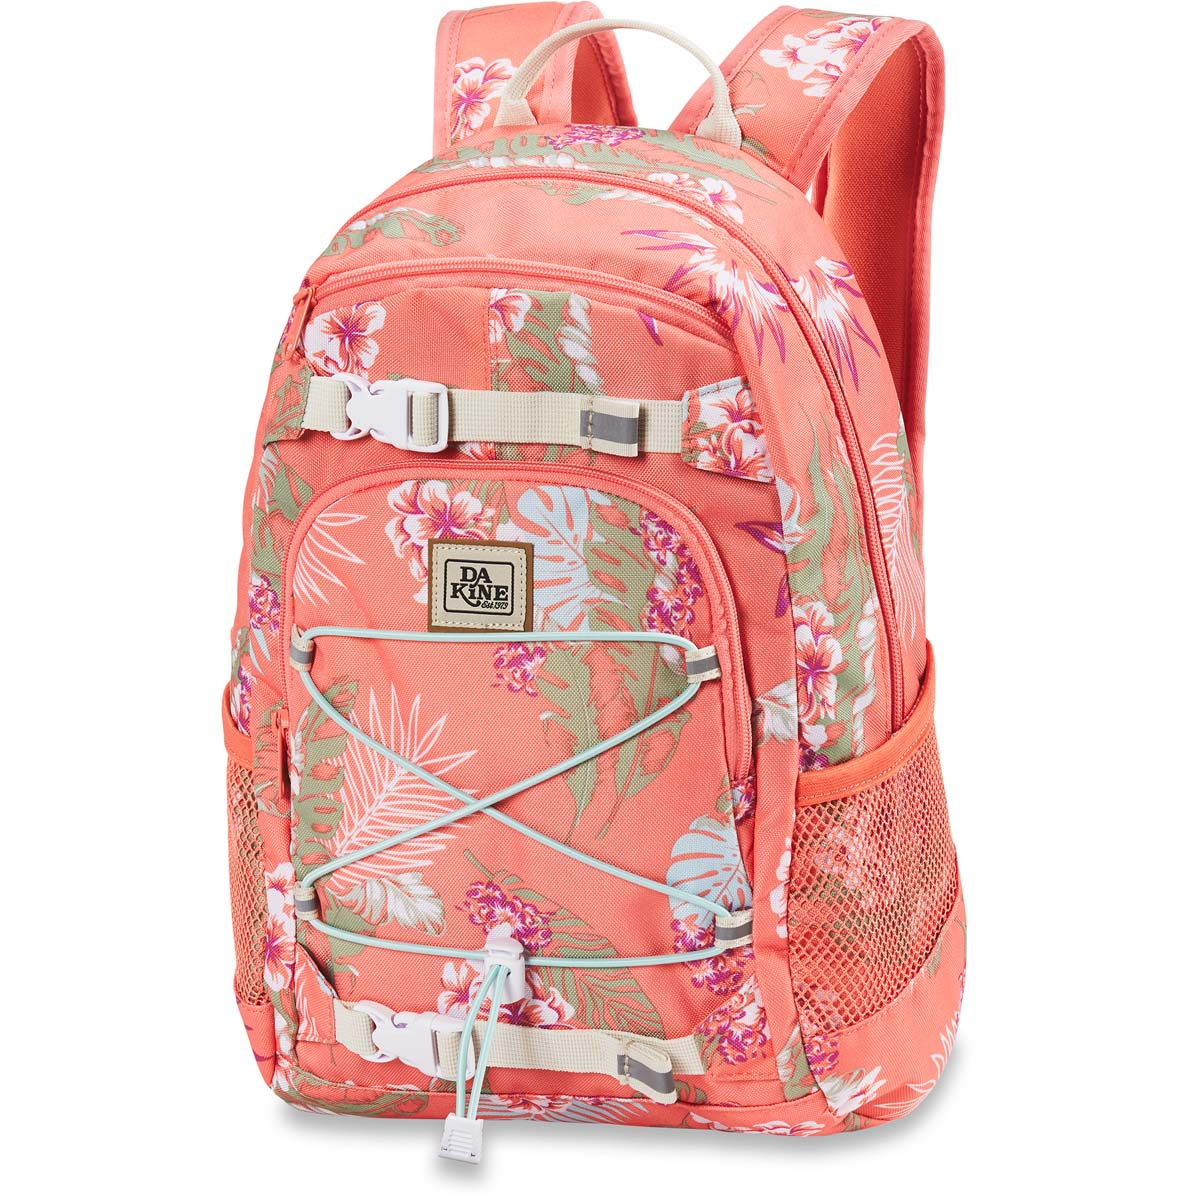 dbb3786db93 Dakine Grom 13L Backpack Waikiki | Dakine Shop